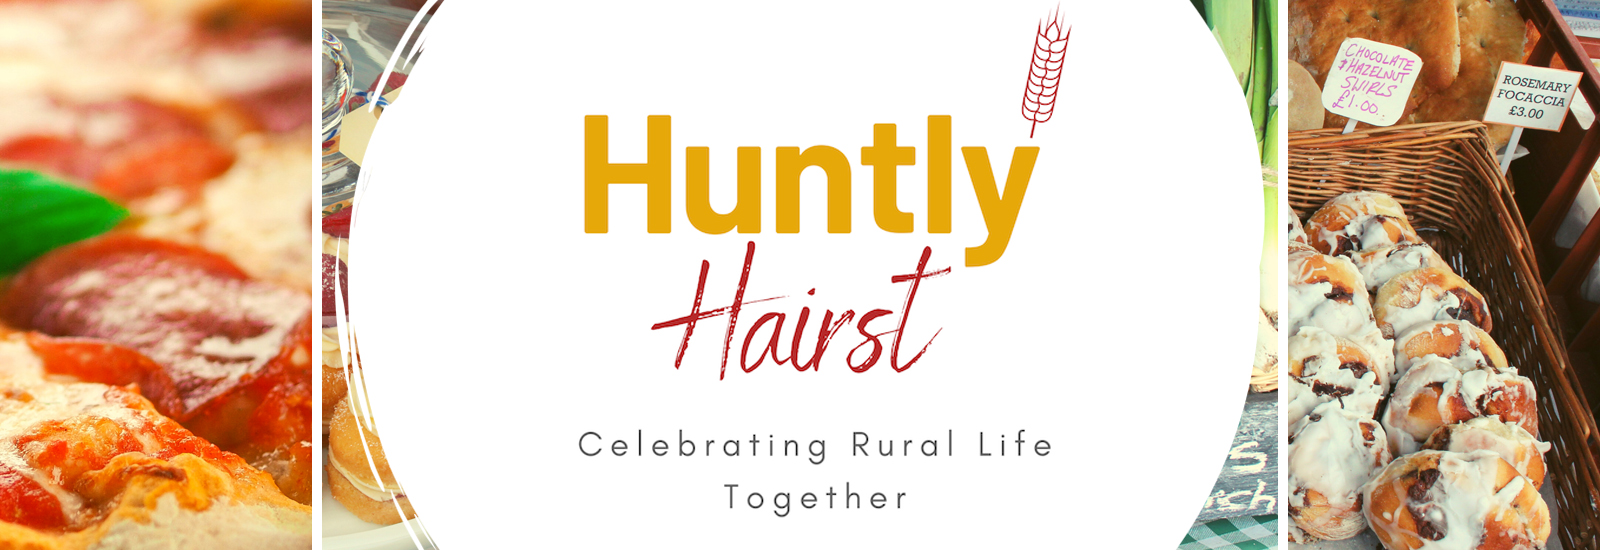 Huntly Hairst homepage banner and logo